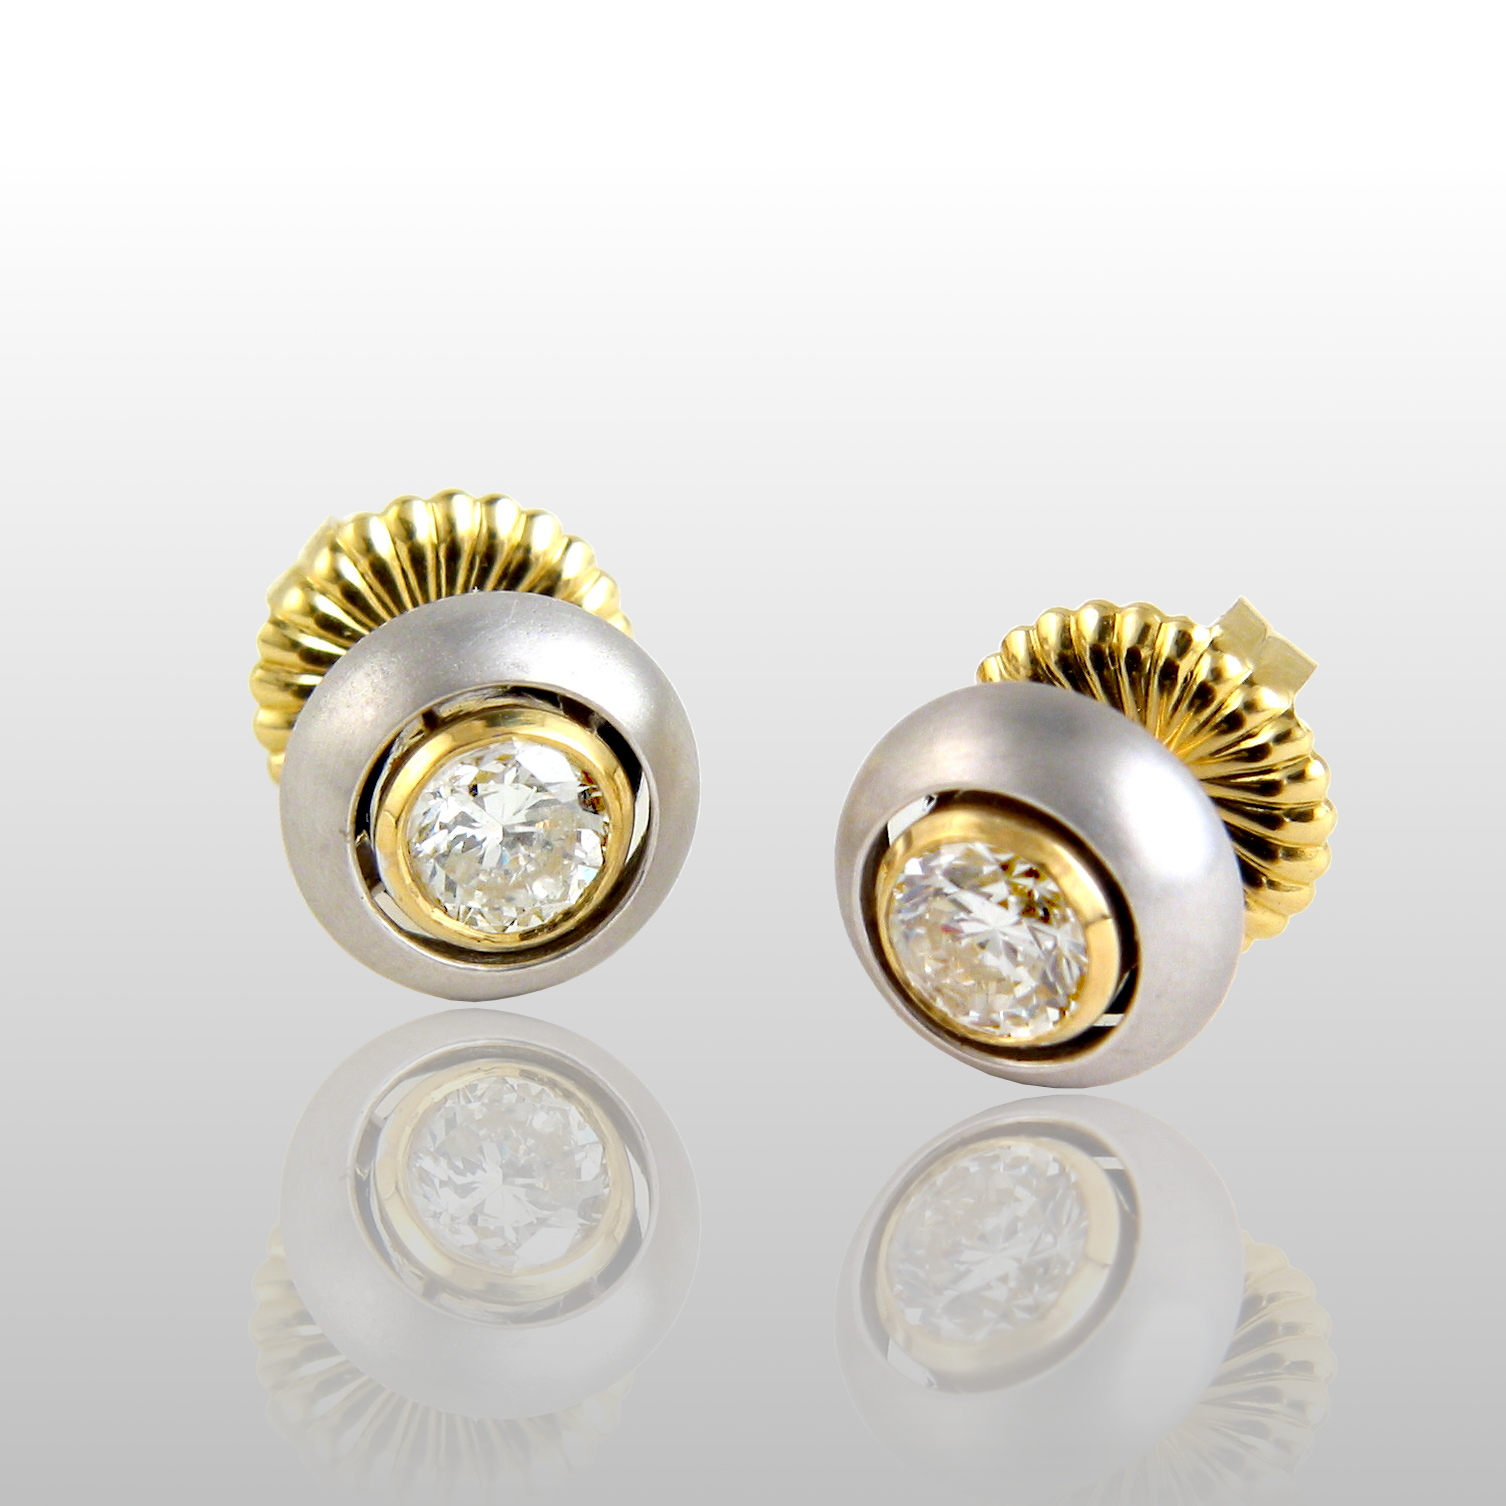 Diamond Ear Studs 'Puntos' in 18k White and Yellow Gold by Pratima Design Fine Art Jewelry